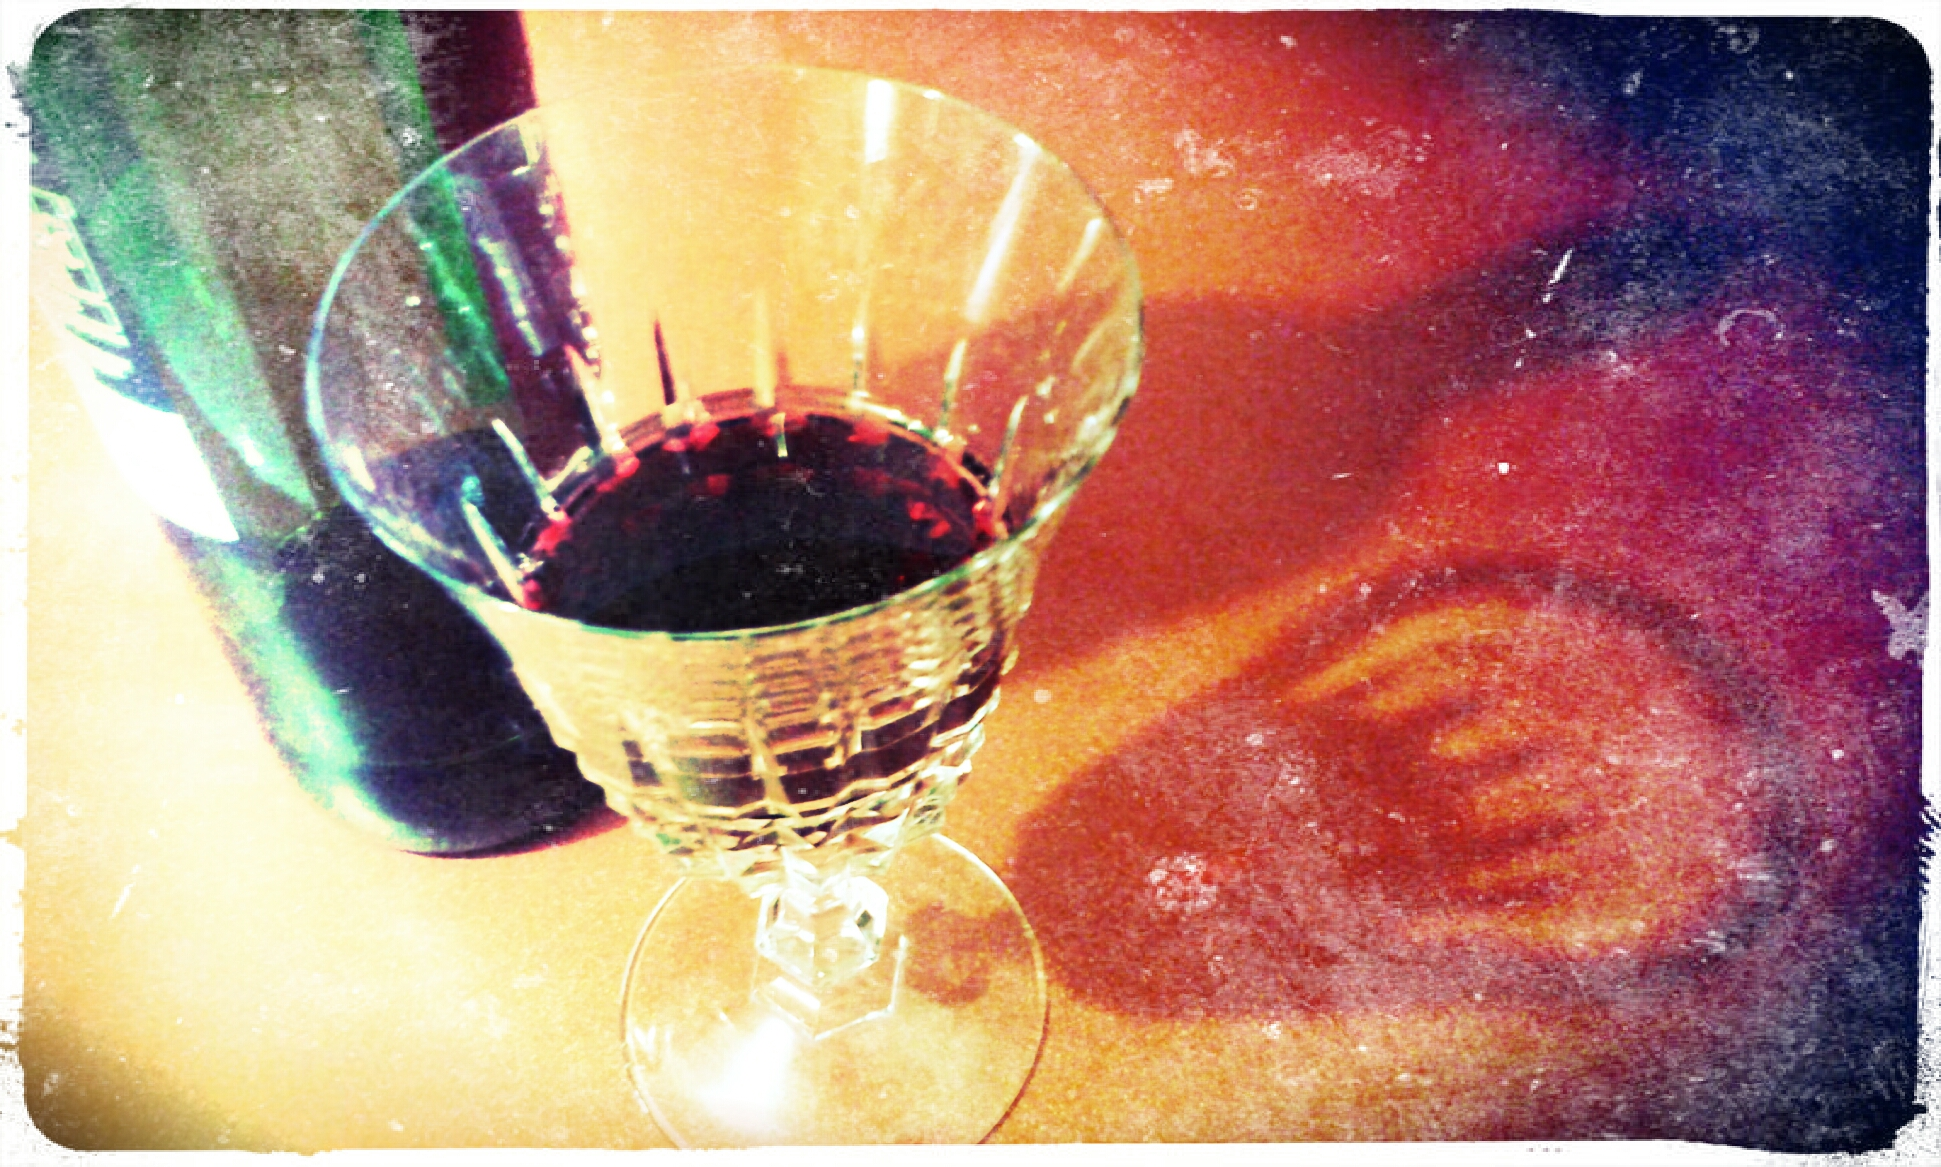 Friday: Ode to Red Wine